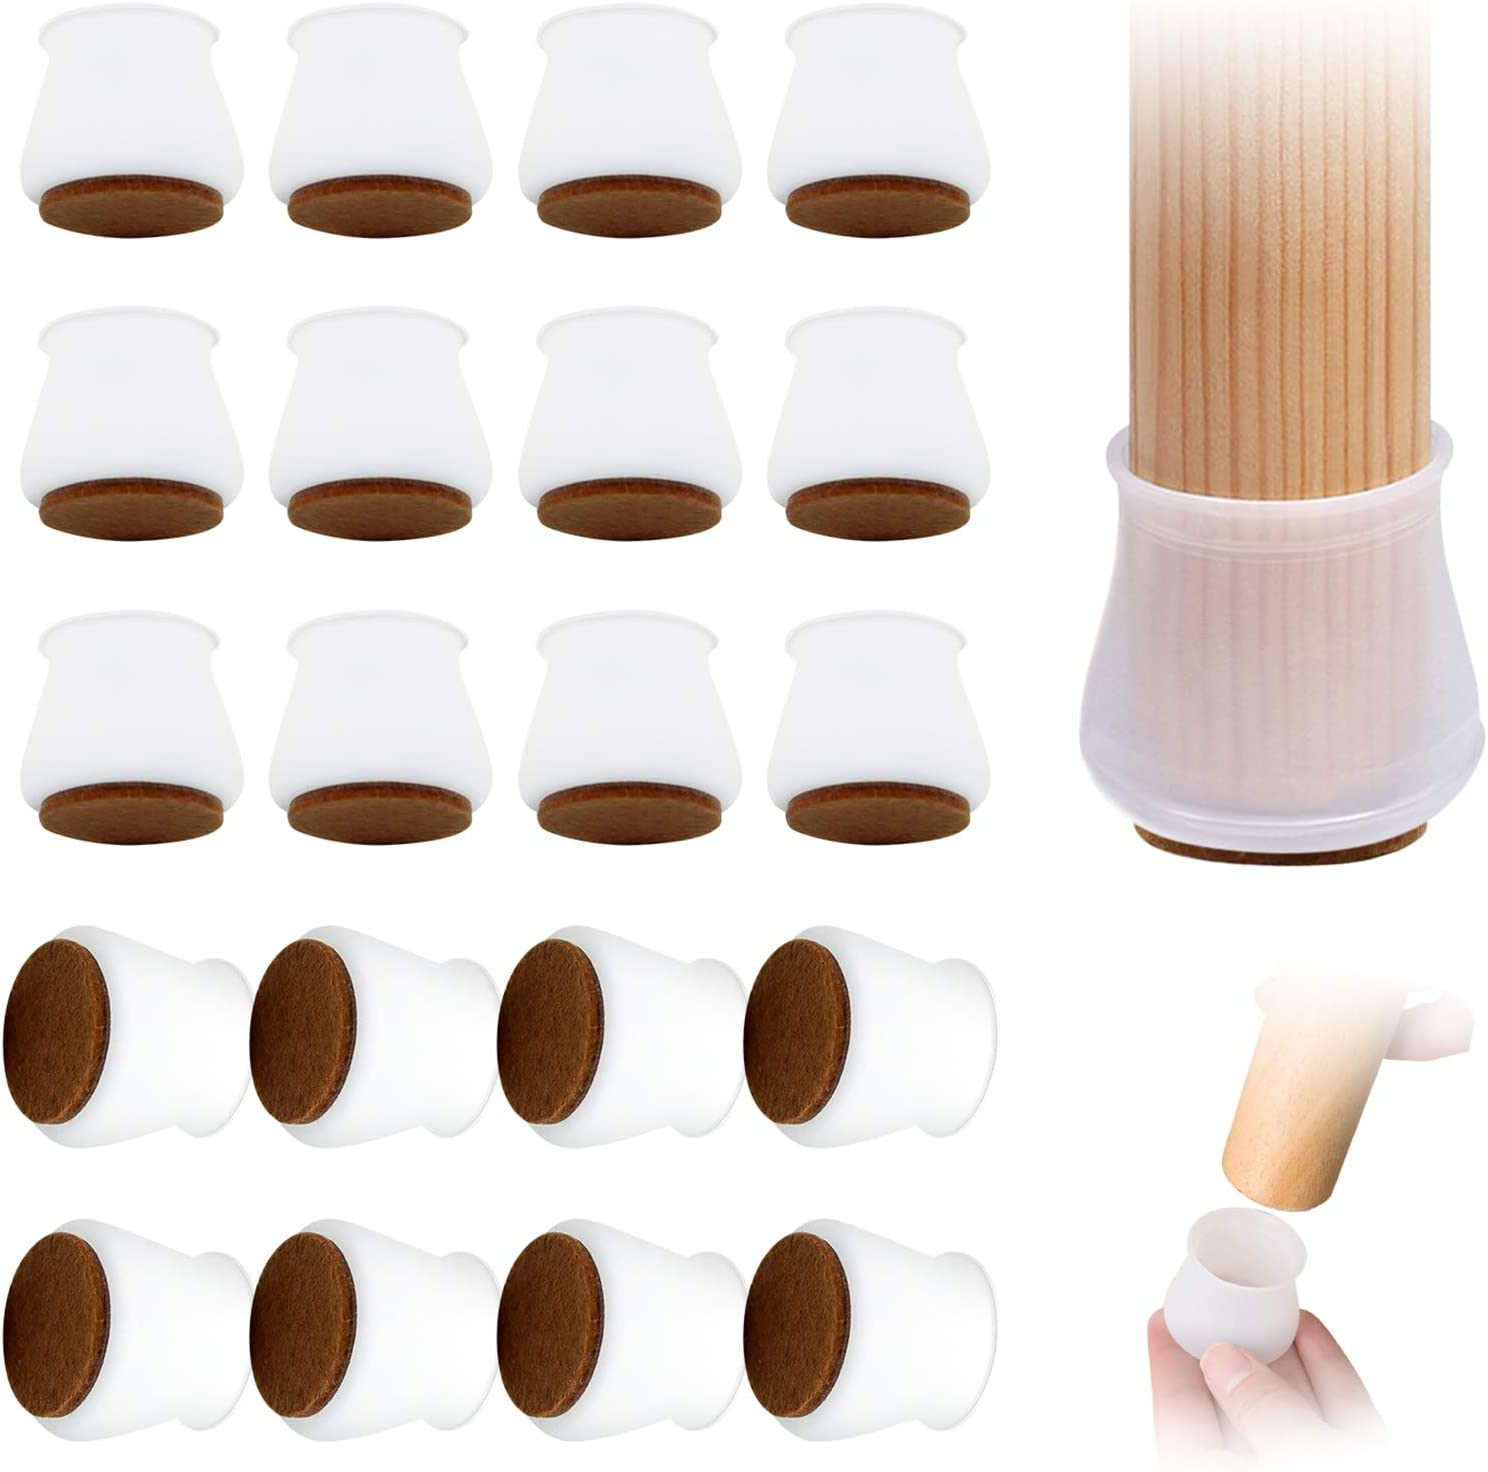 Upgrade 40pcs Furniture Silicon Protection Cover with Felt Pad, Chair Legs Hardwood Floor Protectors Caps, Chair Leg caps with Felt Furniture Pads for Round or Square, Prevent Scratches and Noise.